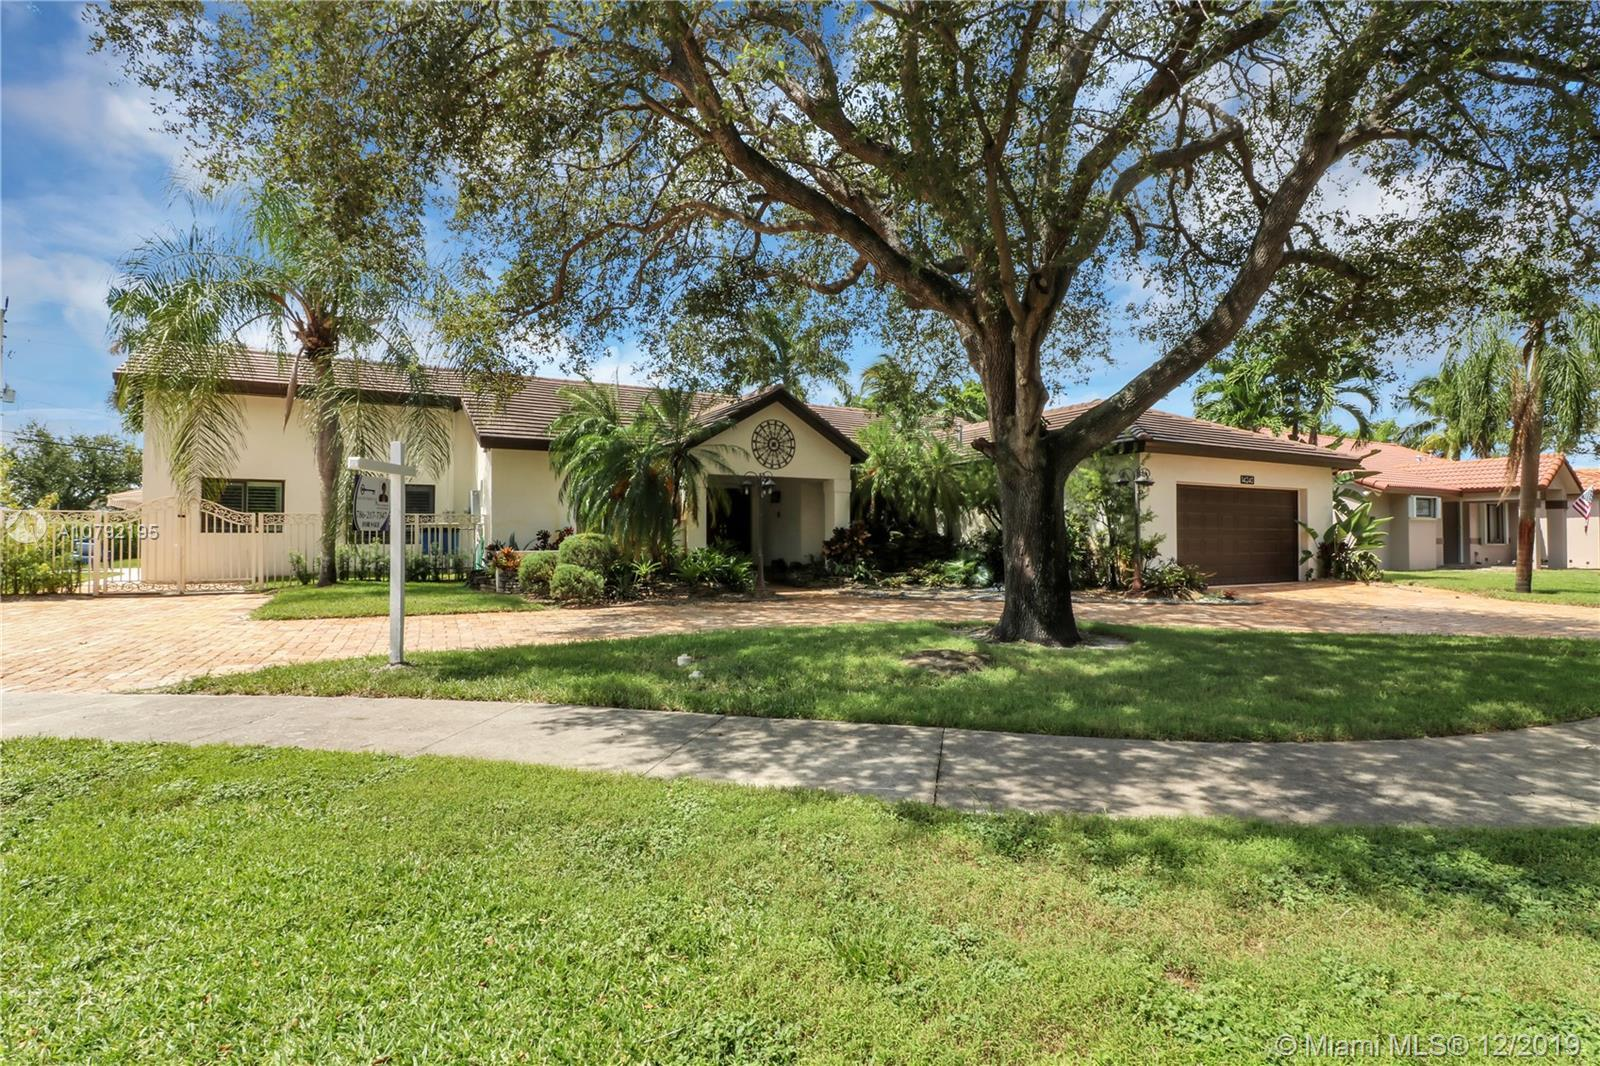 Perfect multi-generational home. This pool home with large yard is perfect for a large family. There